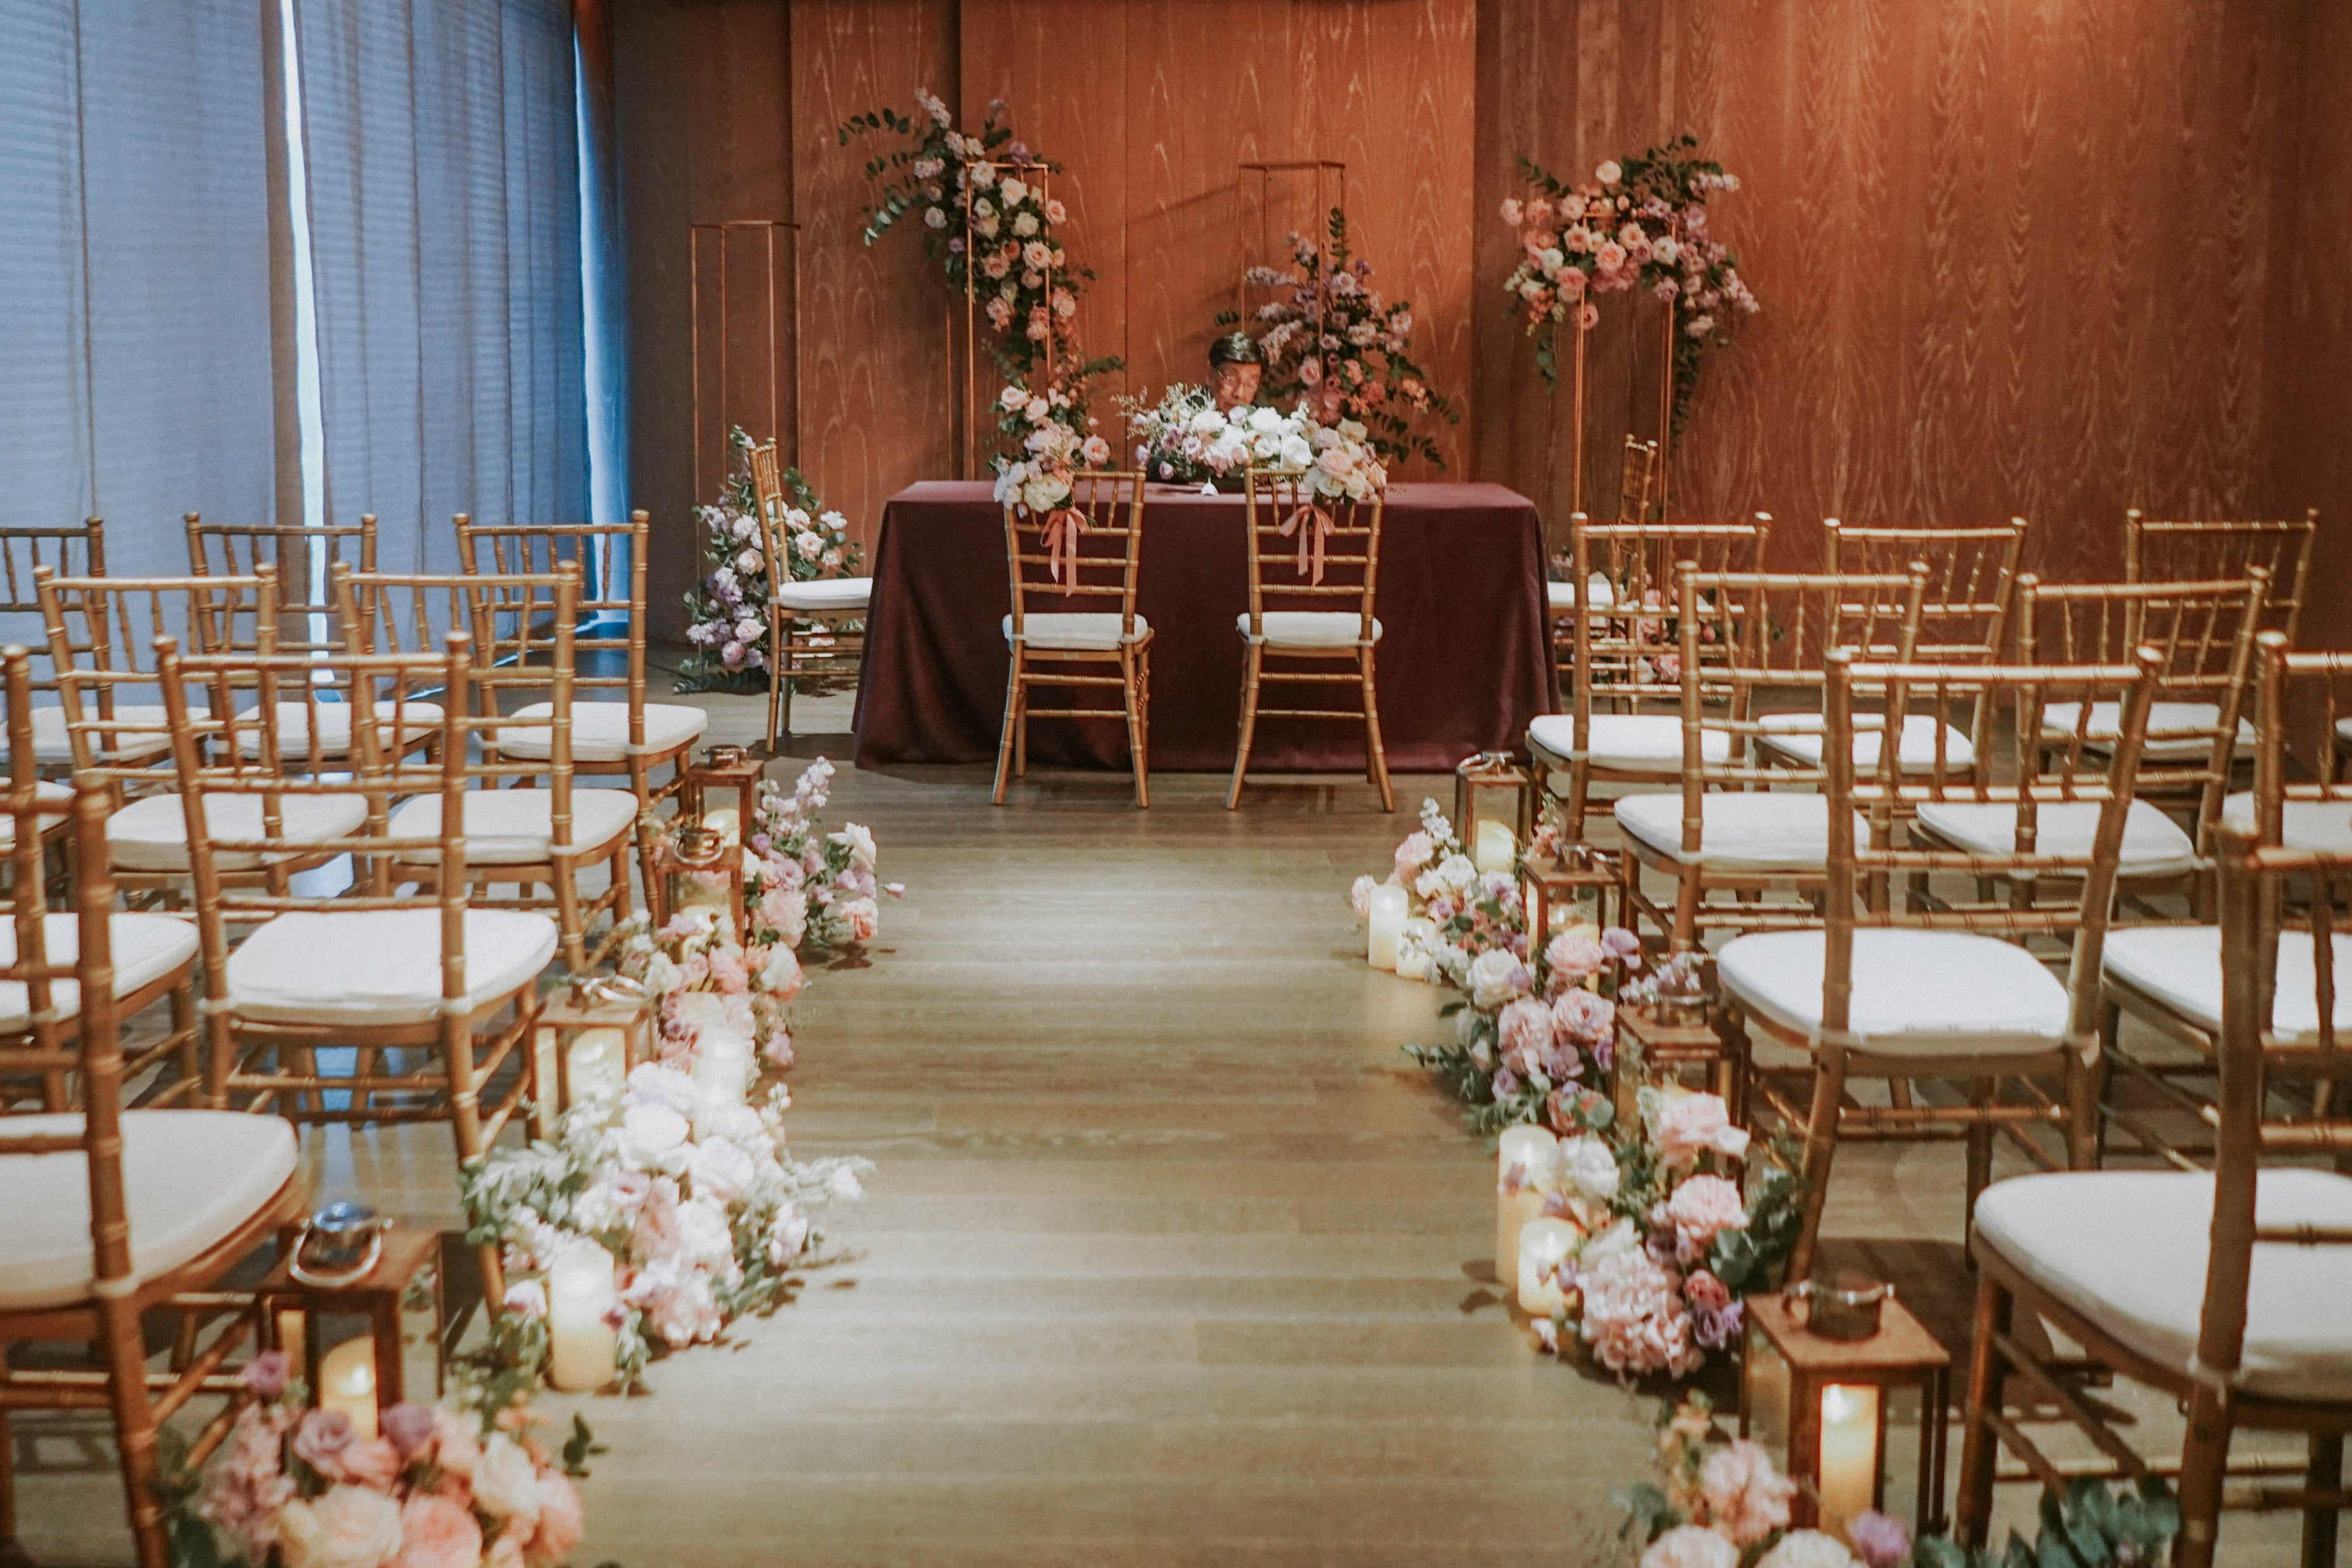 Gold Tiffany chairs with white cushions in intimate solemnisation ceremony hall lined with romantic floral hedges at Hyatt Andaz Singapore